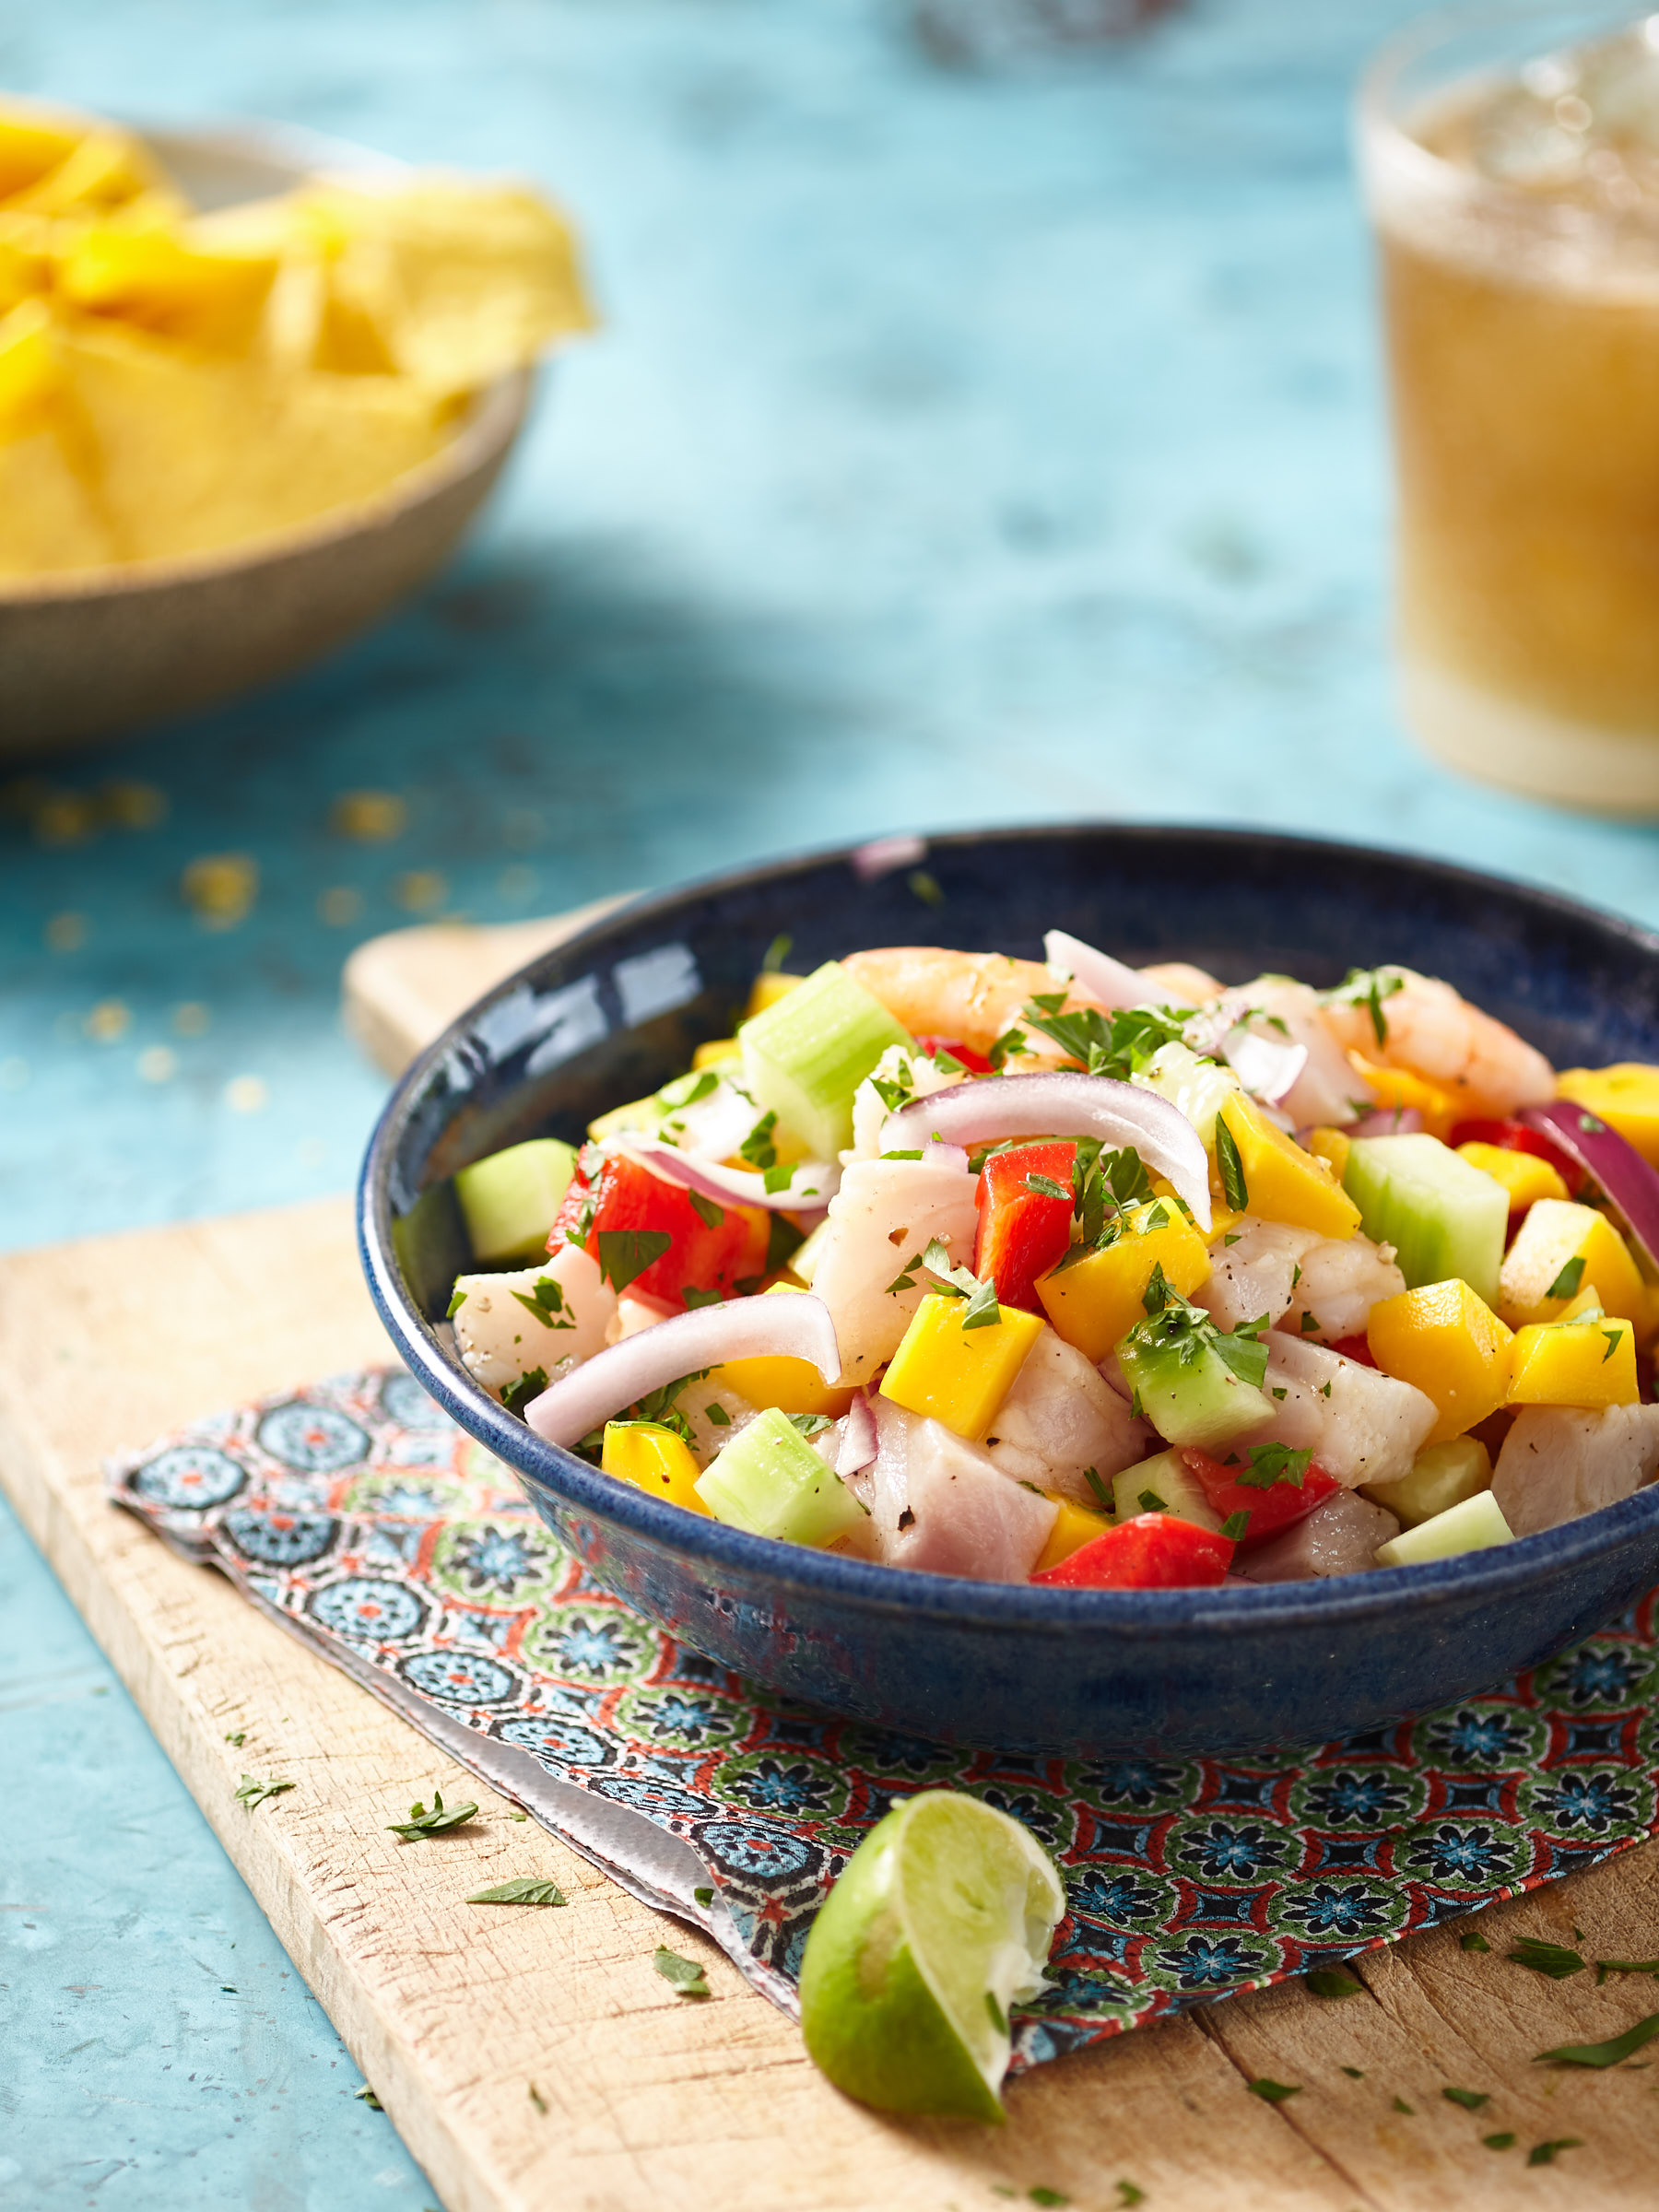 Sommer Ceviche mit Obst